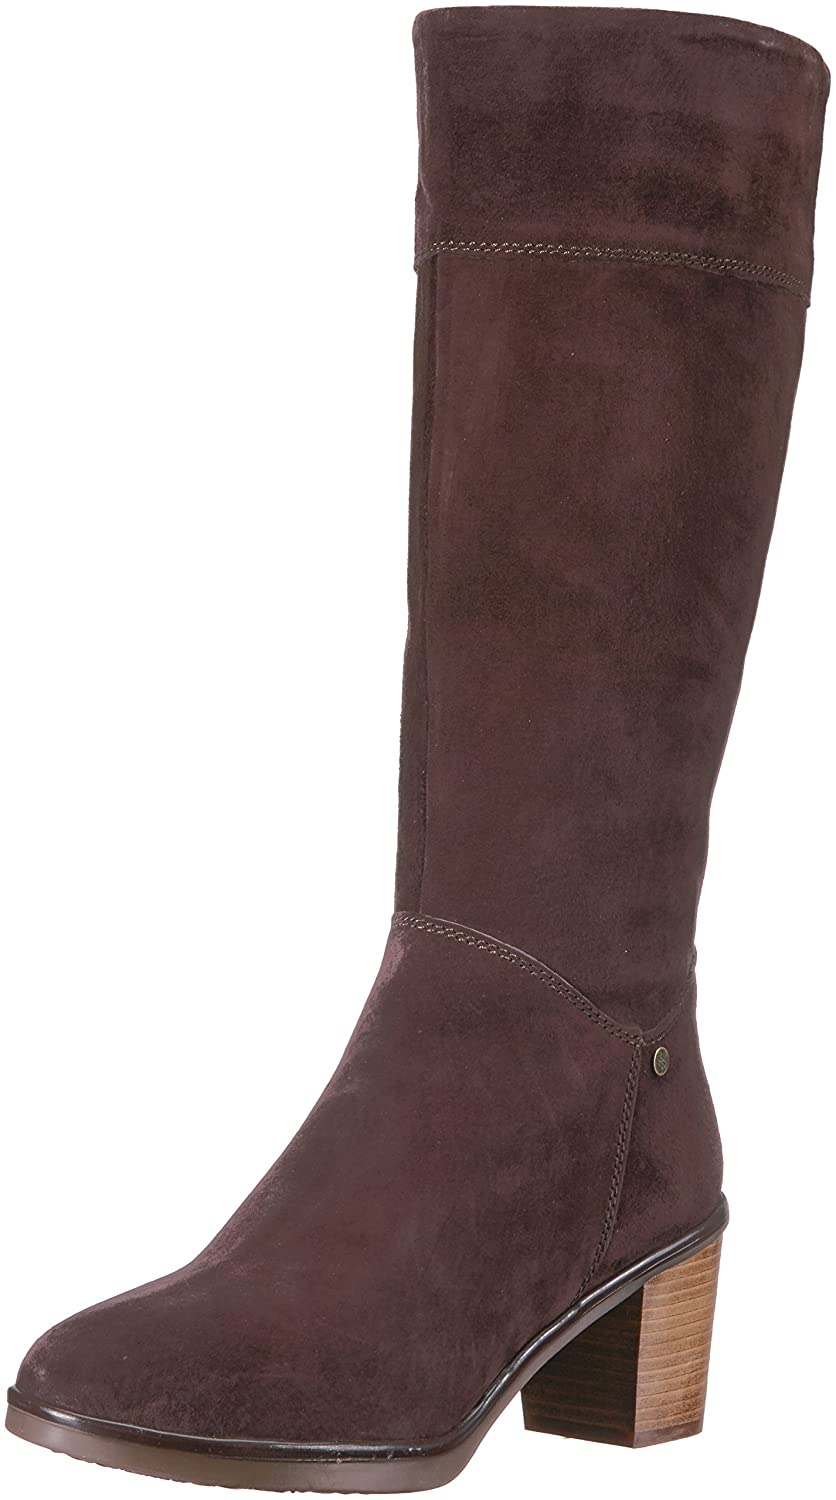 Hush Puppies Women's Saun Olivya Boot B01MZFB5BZ 8.5 W US|Dark Brown